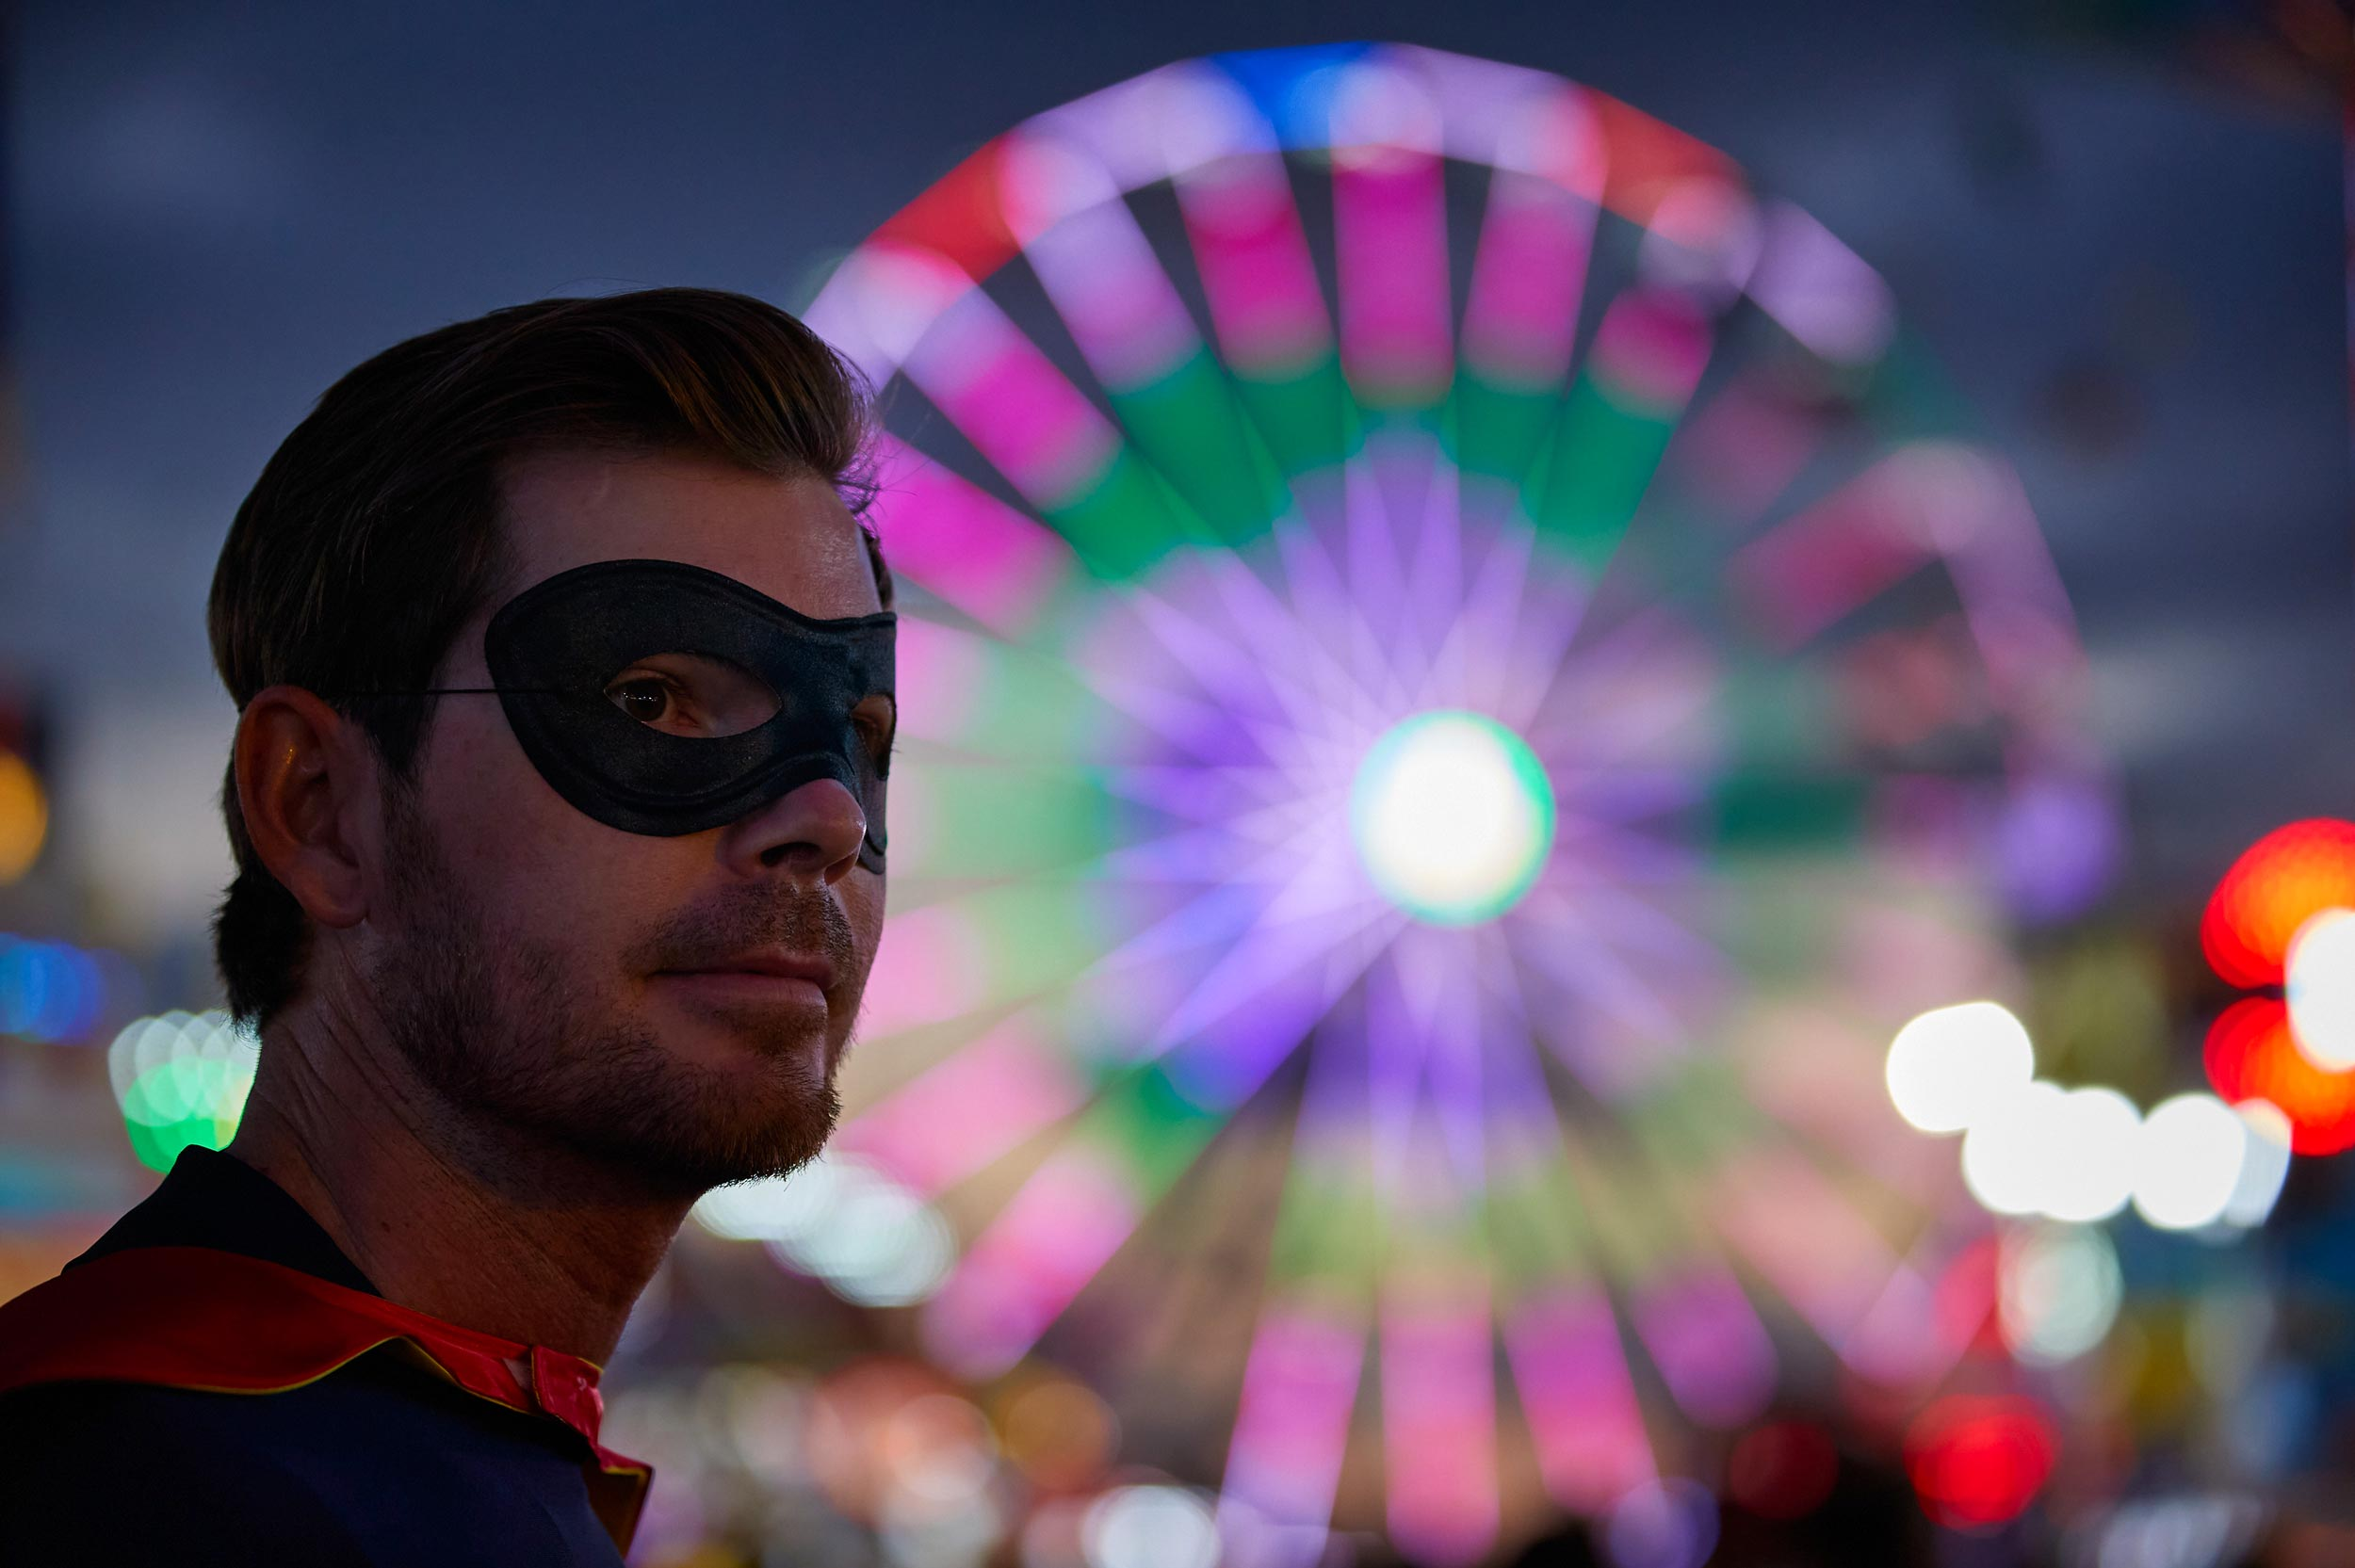 Superhero Near Nighttime Ferris Wheel